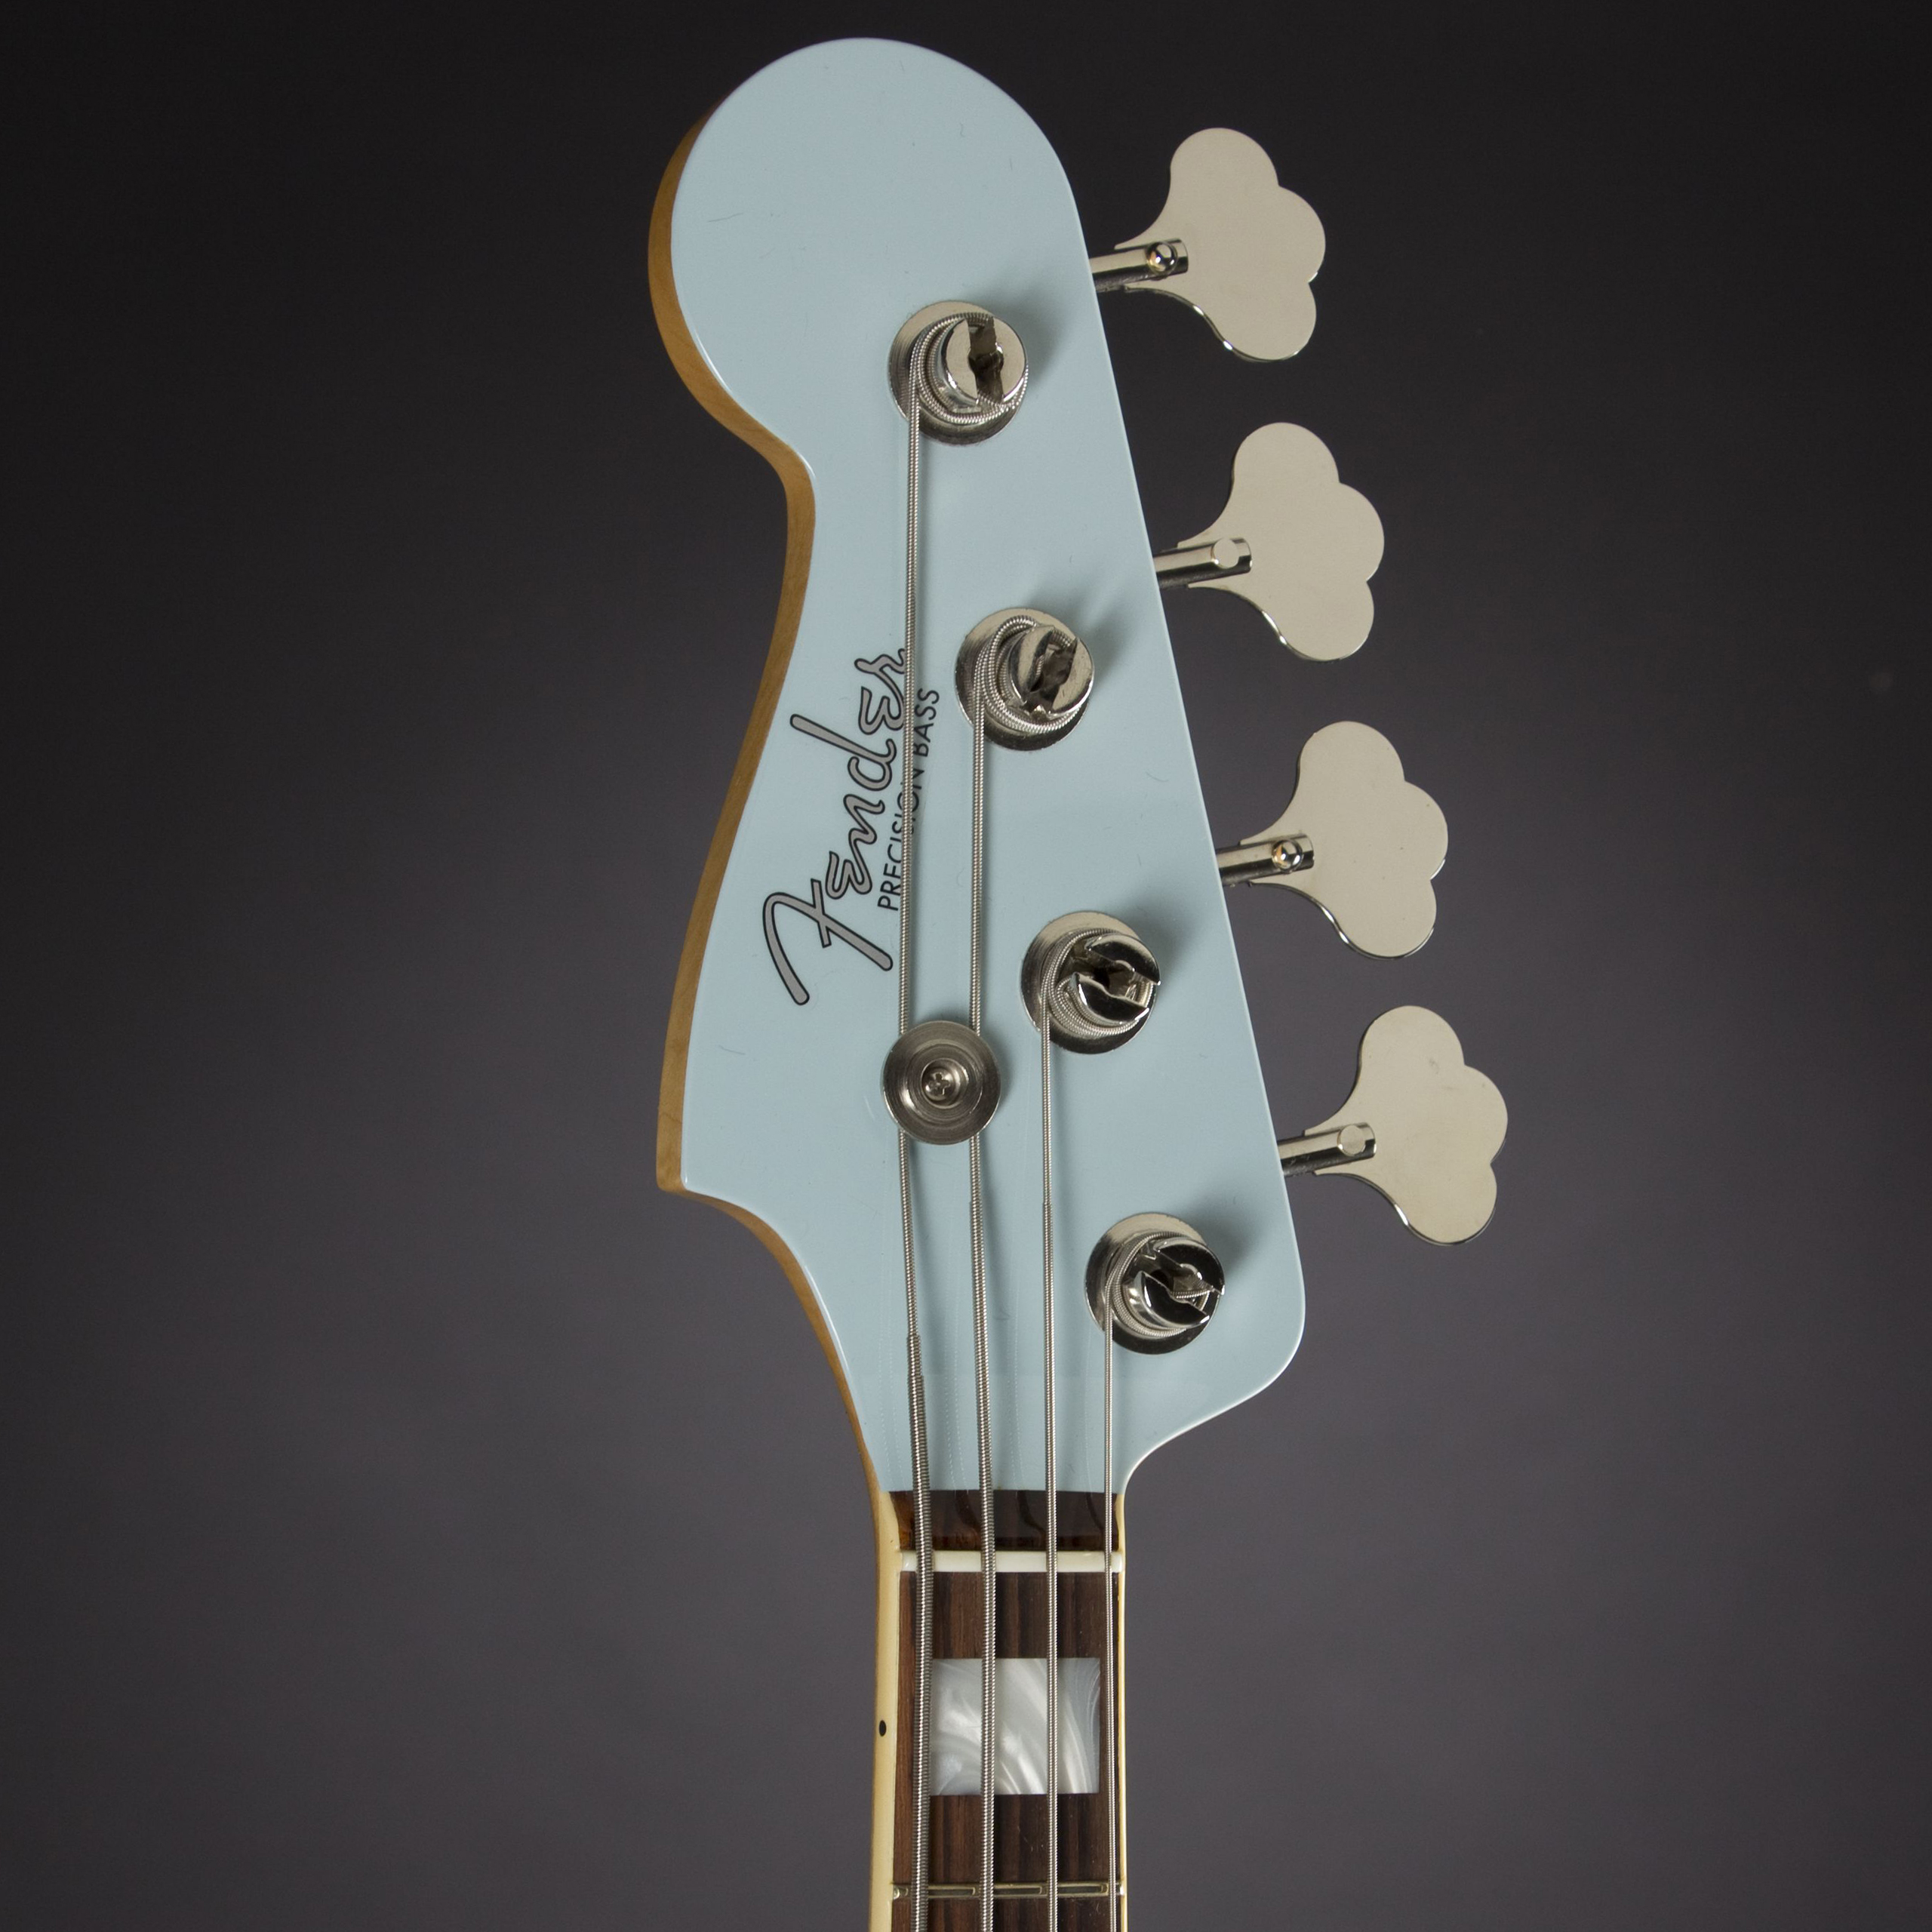 FENDER 1959 Precision Bass NOS Sonic Blue Masterbuilt Jason Smith #1154 Kopfplatte